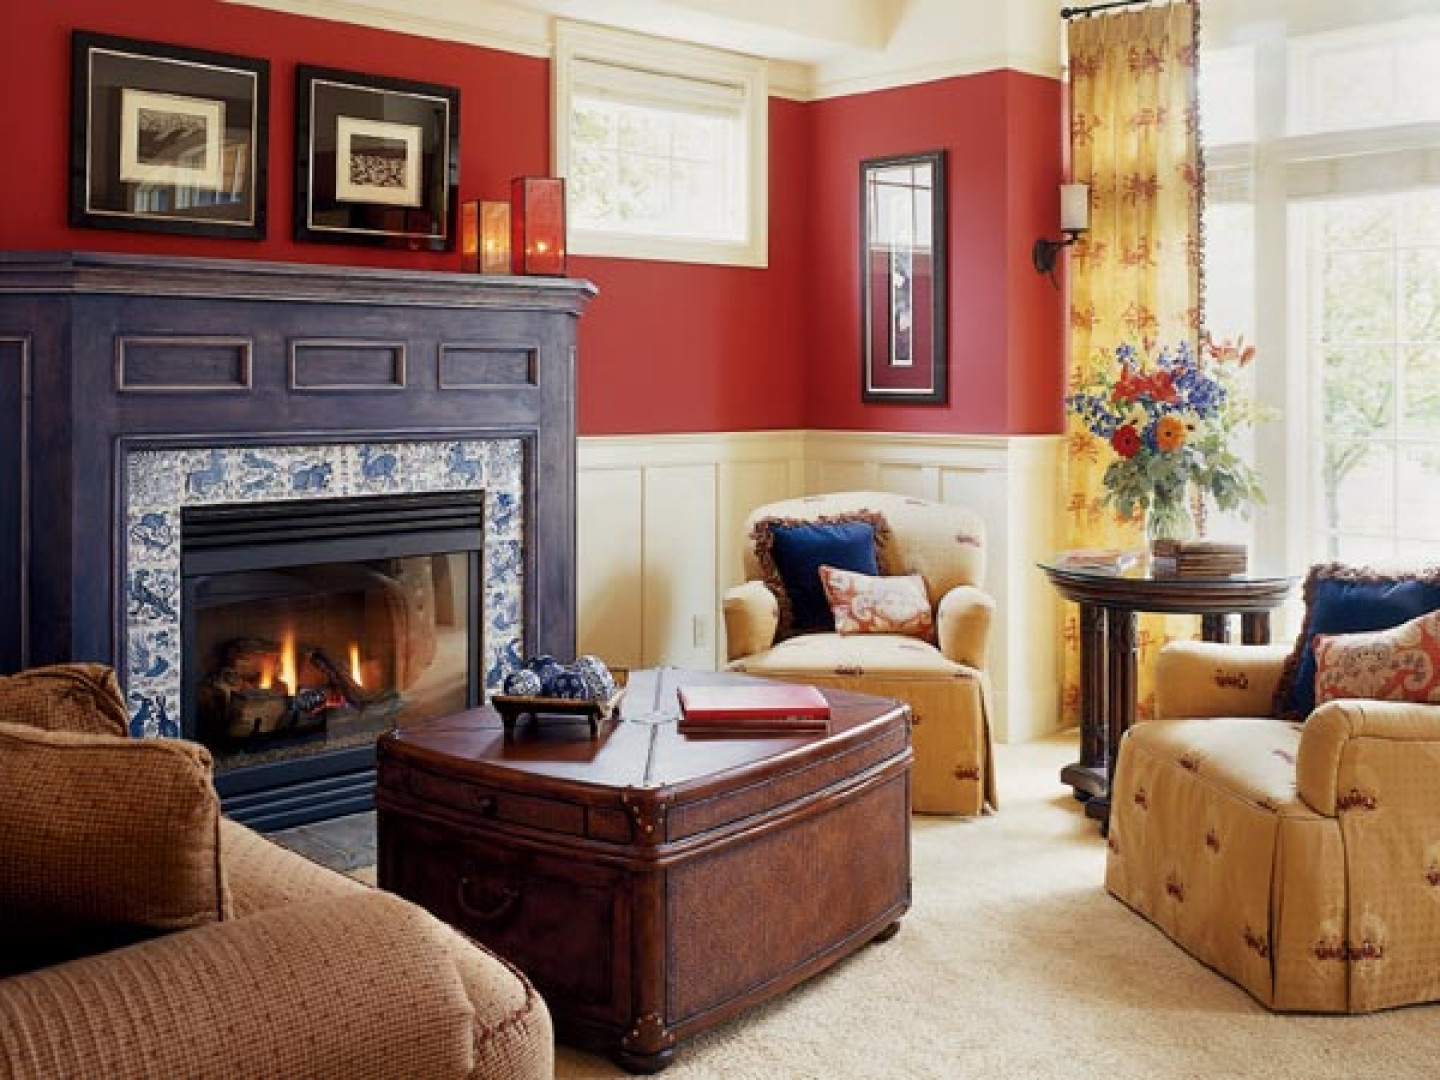 Best ideas about Living Room Color Ideas . Save or Pin Red Living Room Ideas to Decorate Modern Living Room Sets Now.